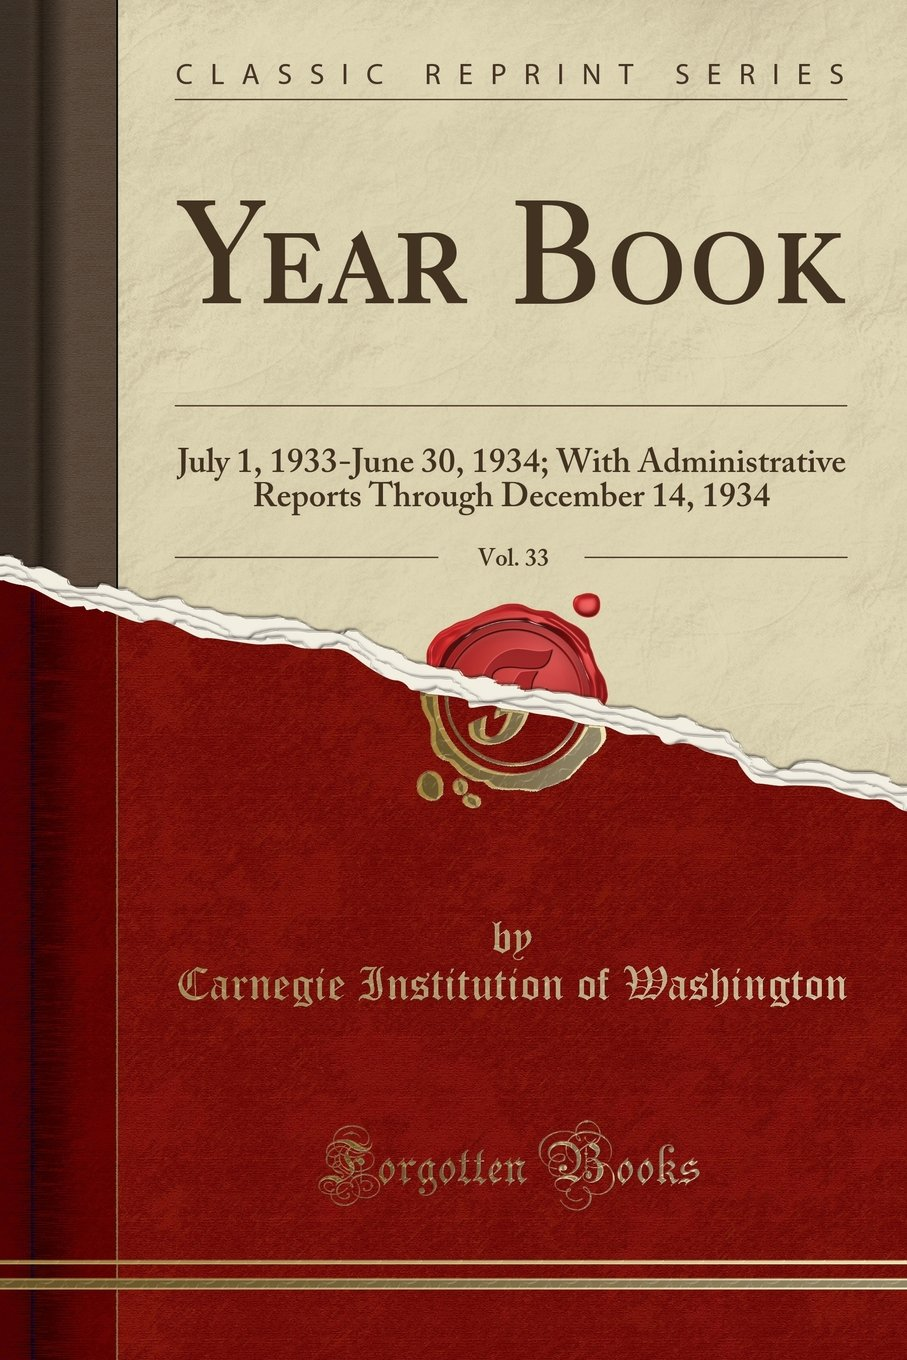 Download Year Book, Vol. 33: July 1, 1933-June 30, 1934; With Administrative Reports Through December 14, 1934 (Classic Reprint) PDF